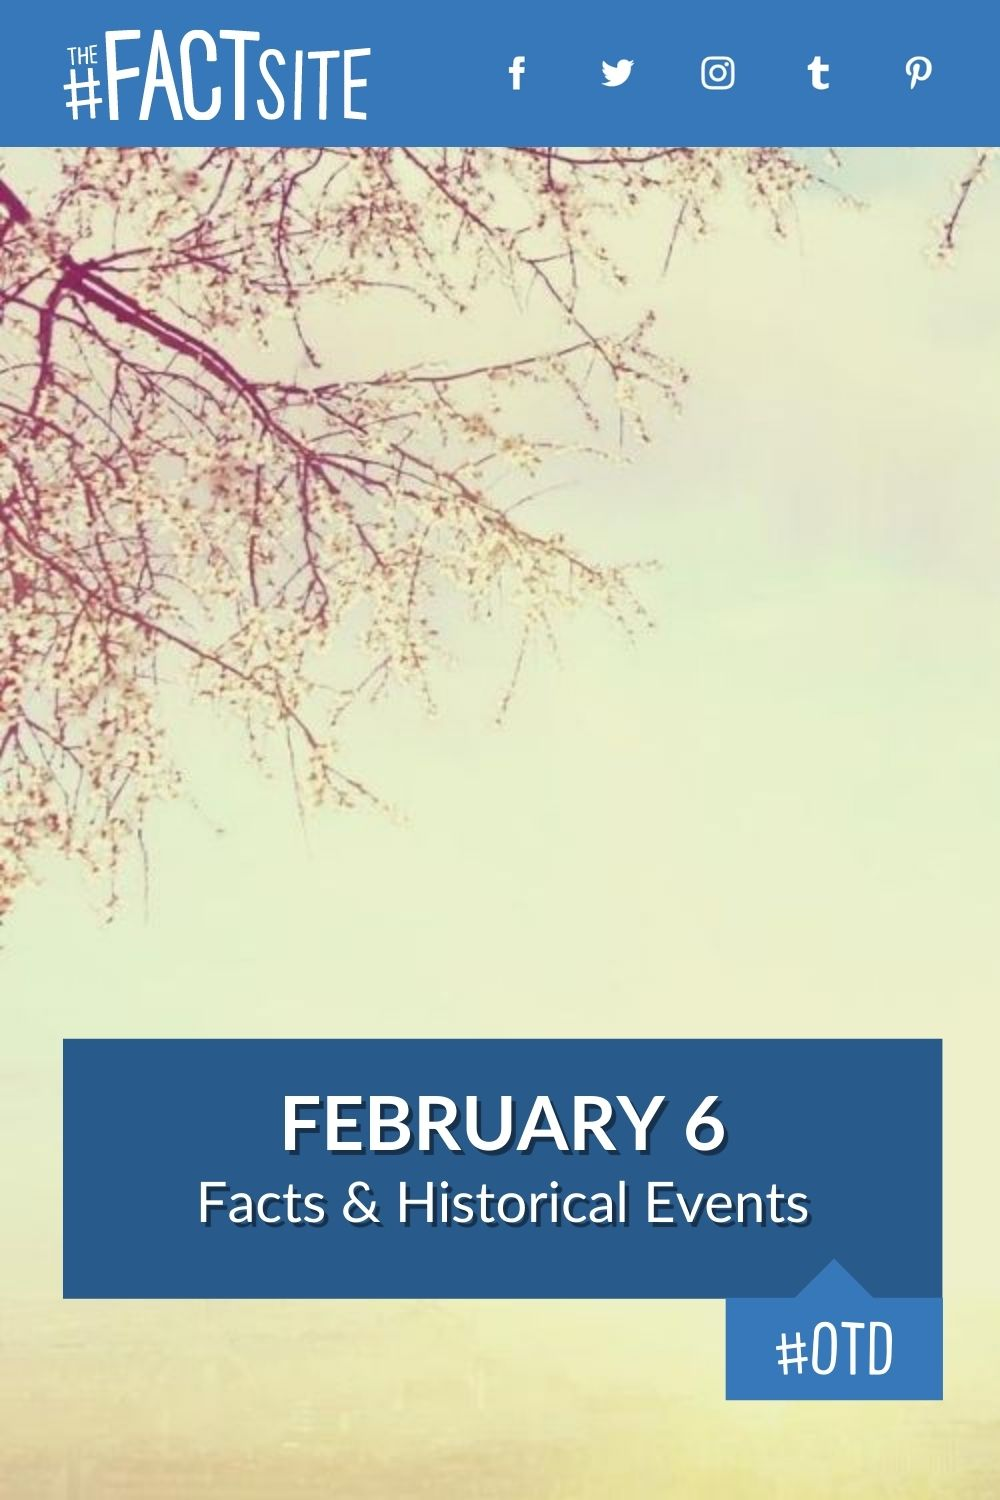 Facts & Historic Events That Happened on February 6